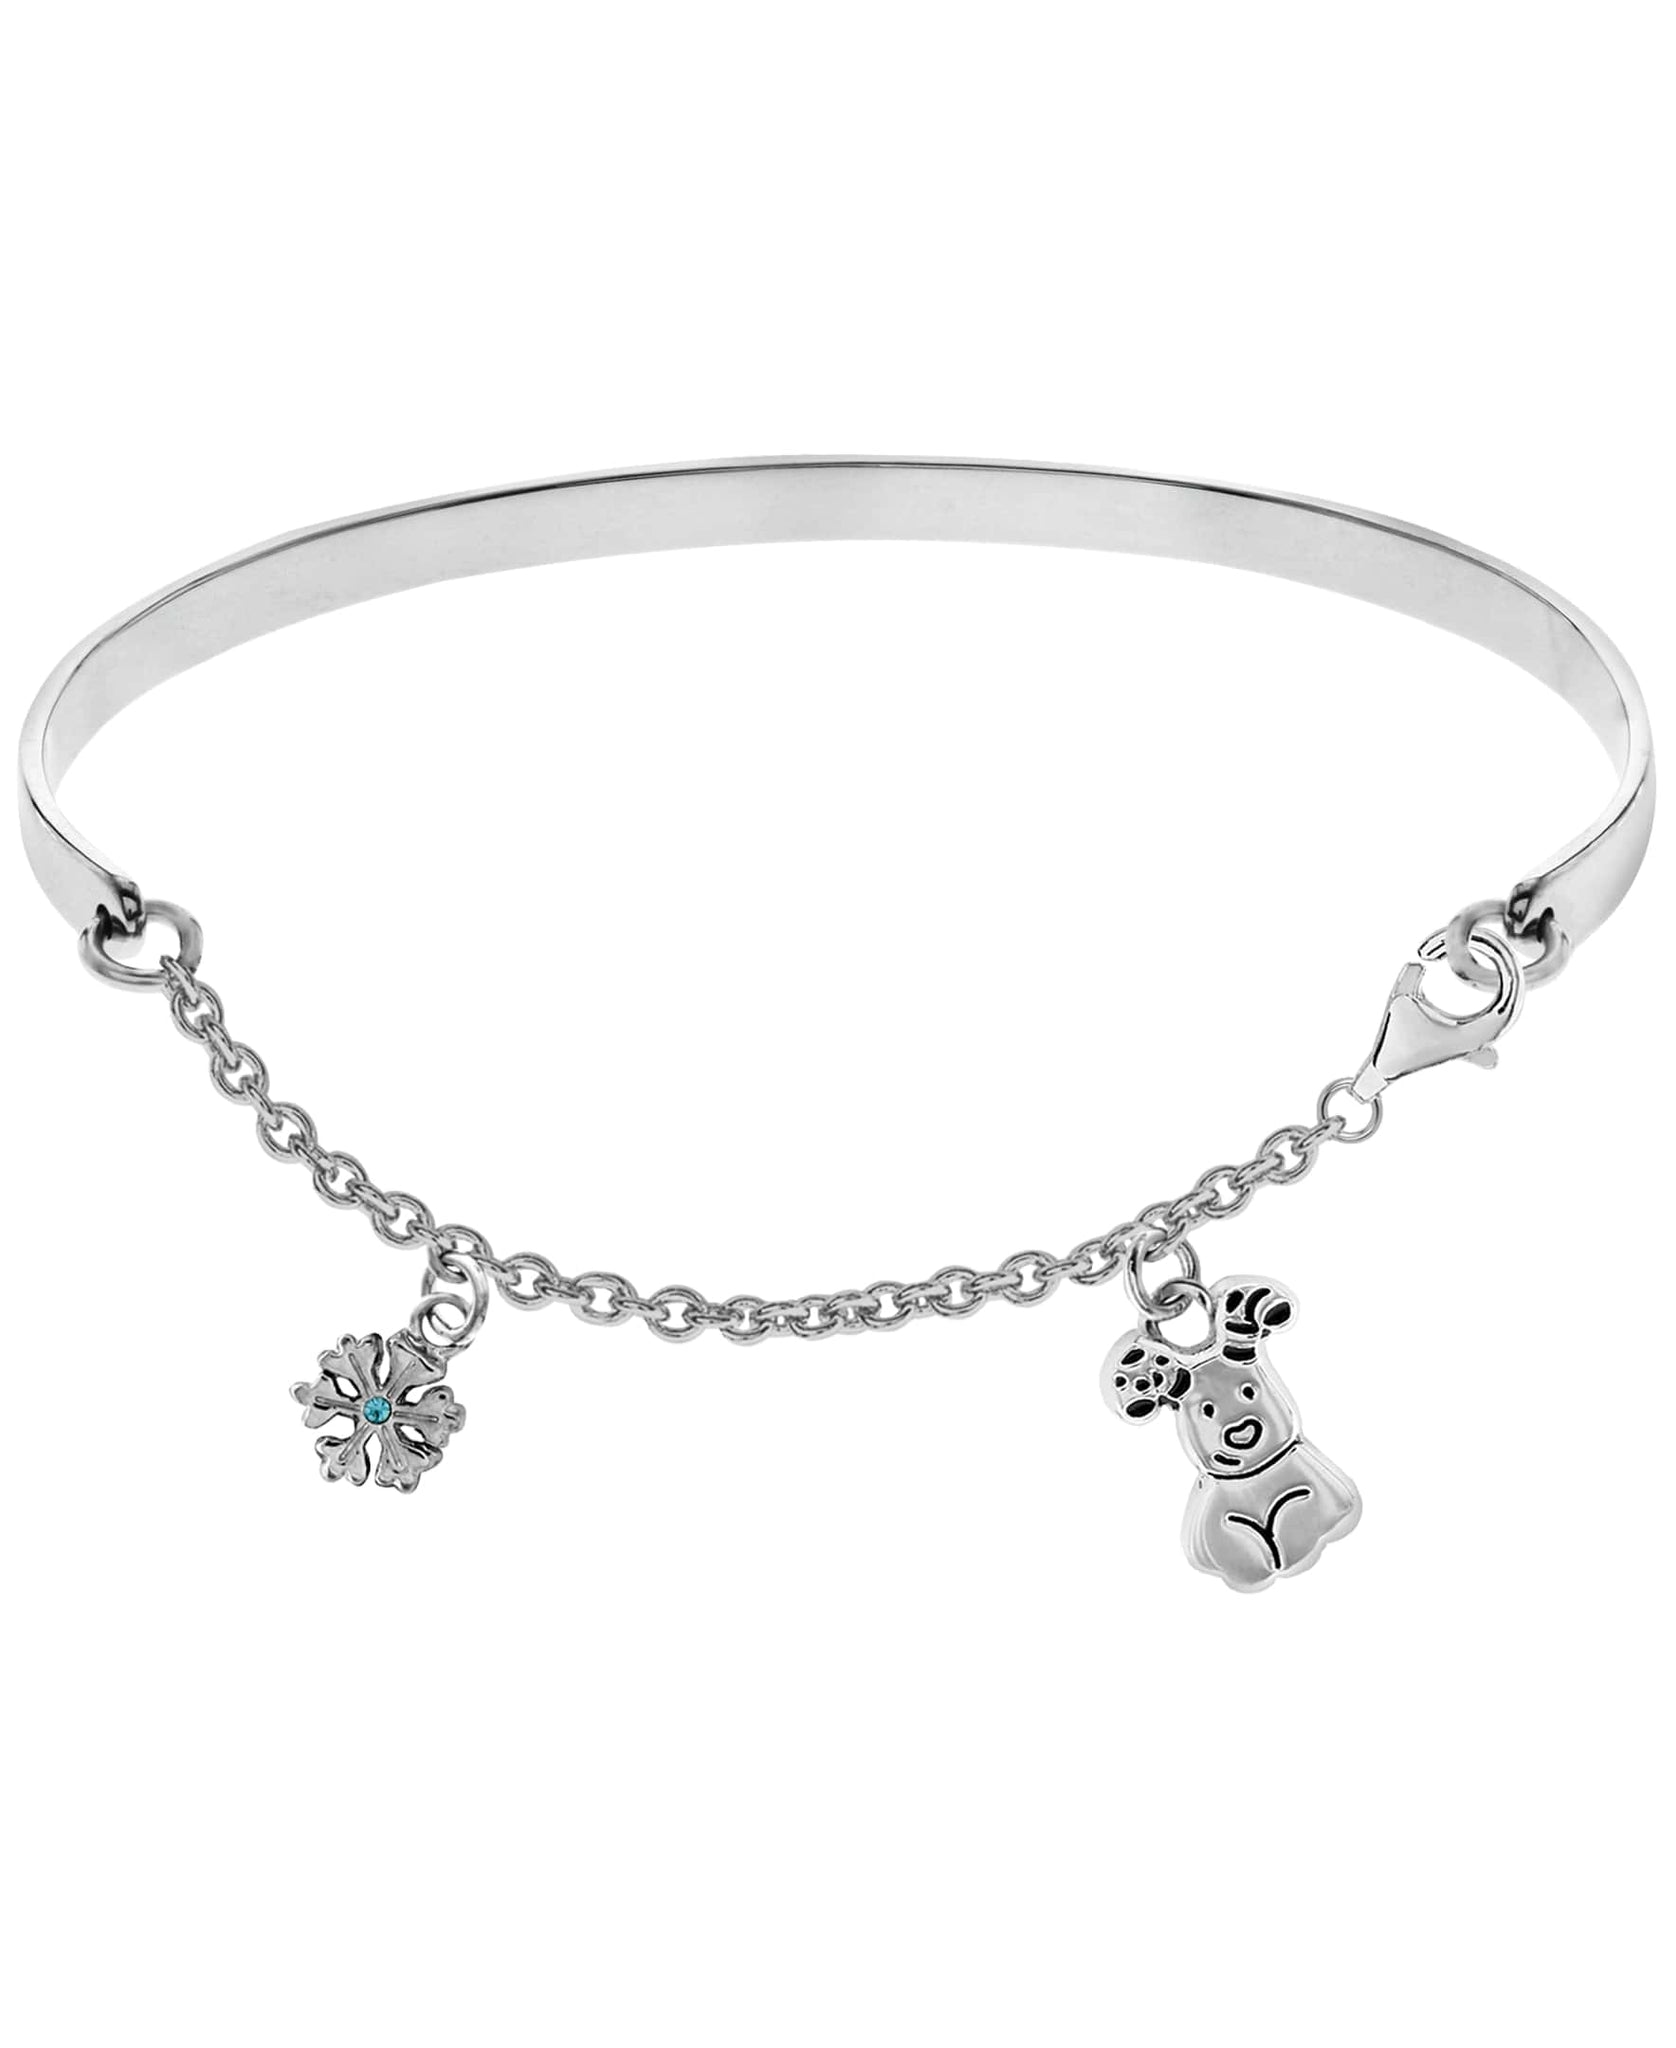 Snowman Snow and Snowdog Charm Bangle Bracelet - Rhona Sutton Jewellery